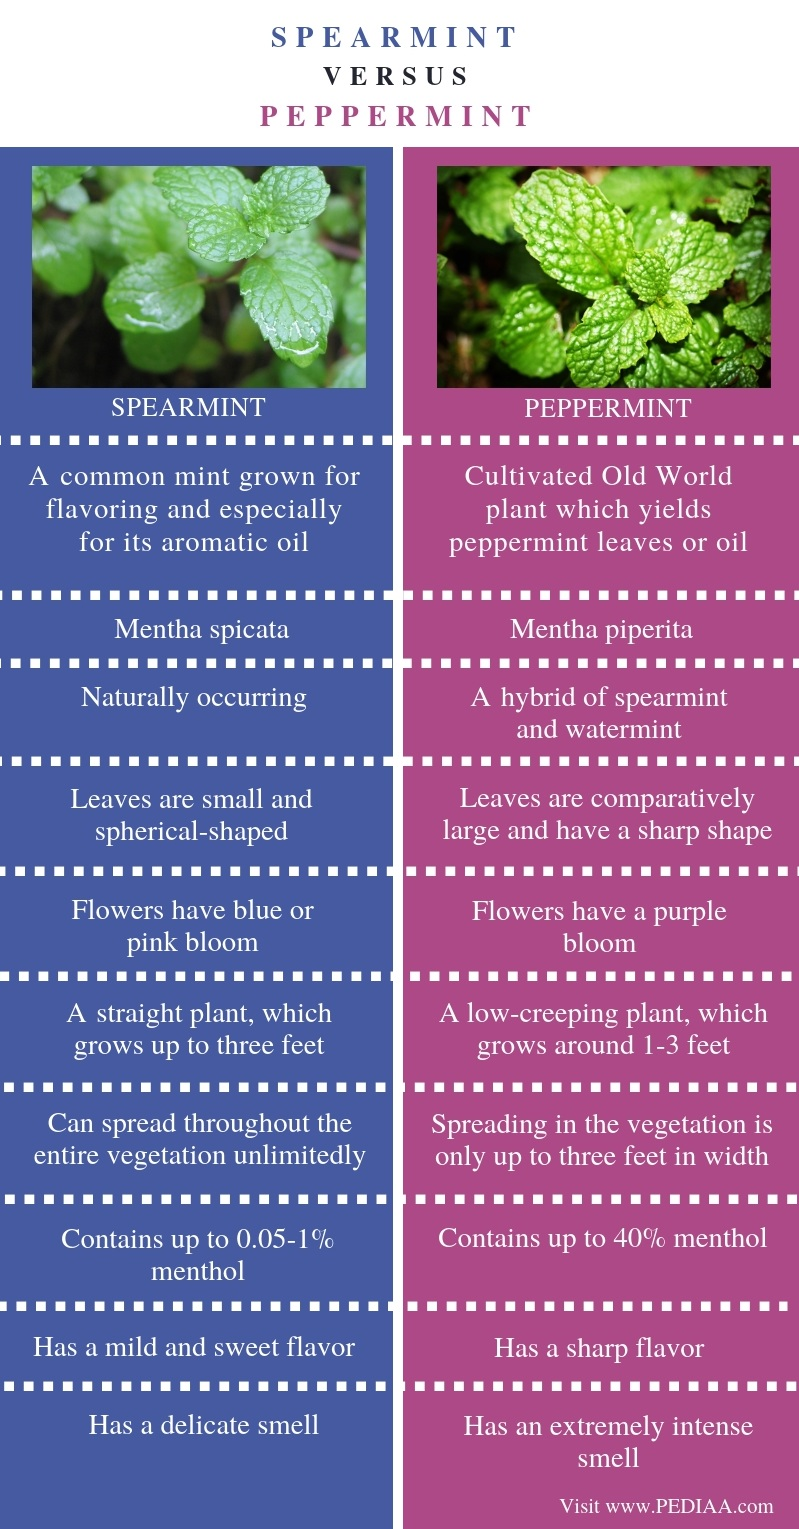 Difference Between Spearmint and Peppermint - Comparison Summary